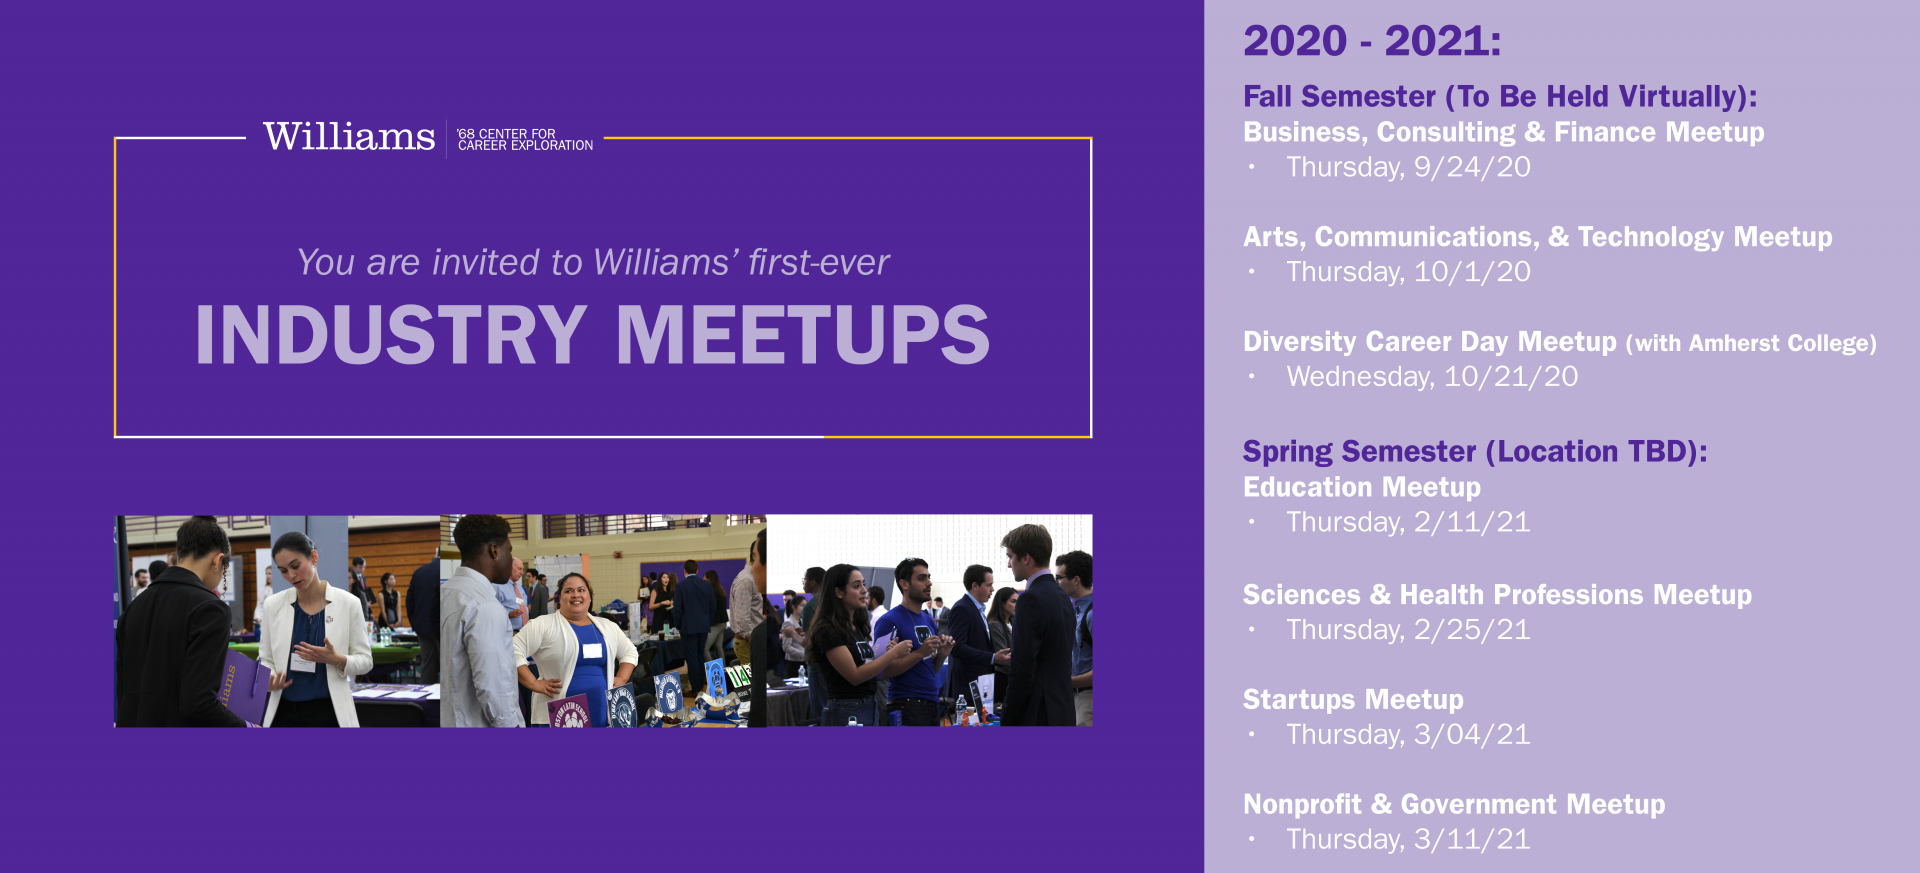 industry meetups dates graphic (employers)